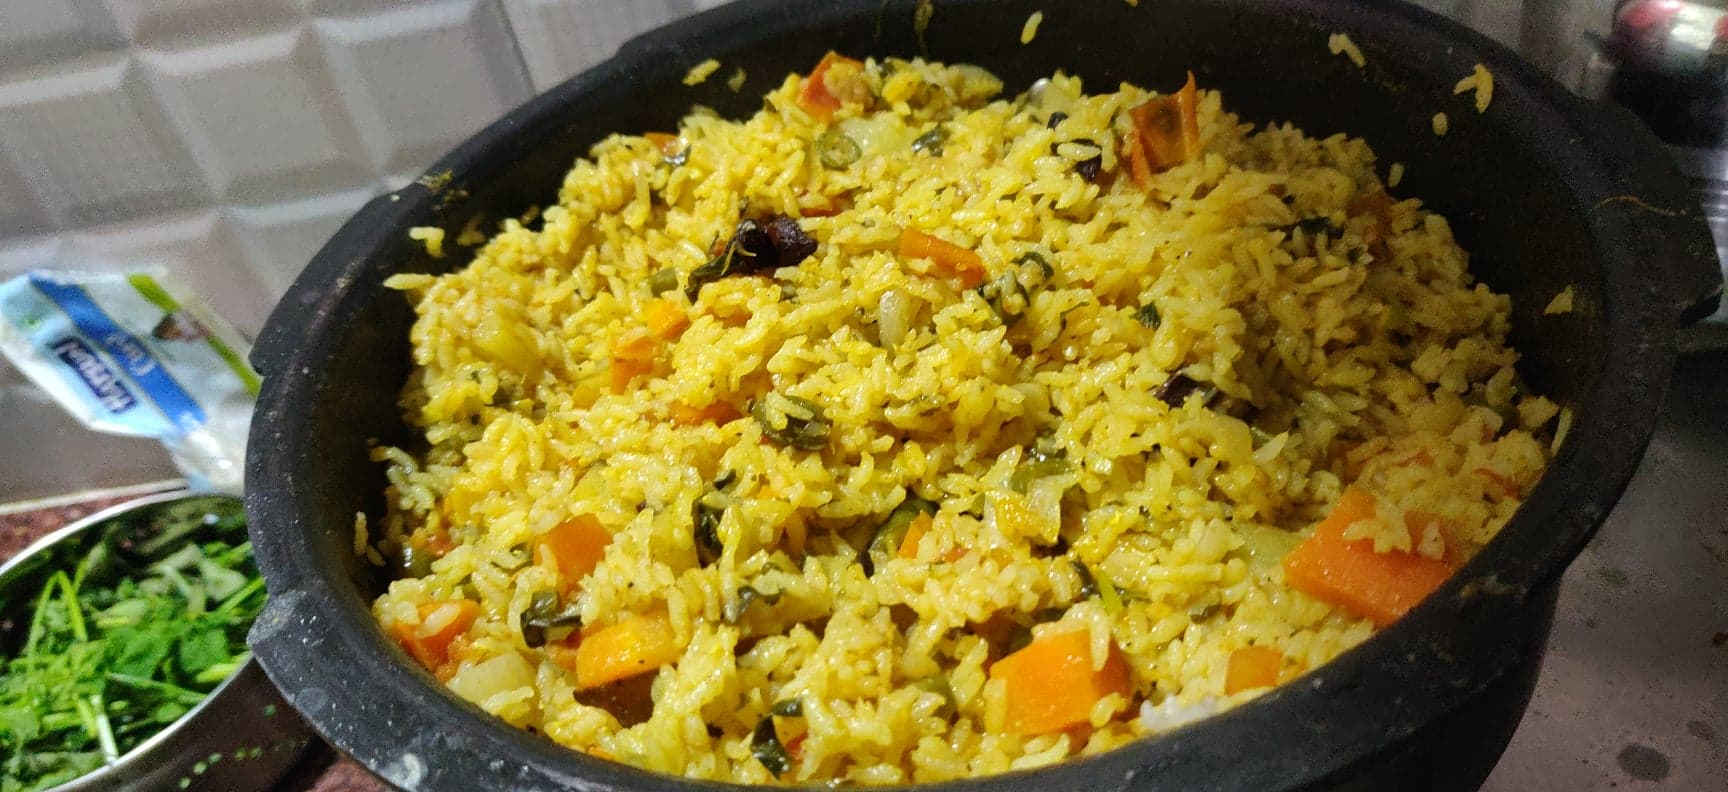 seeraga_samba_vegetable_biryani - 84822261_269188464103278_5977117093181521920_n